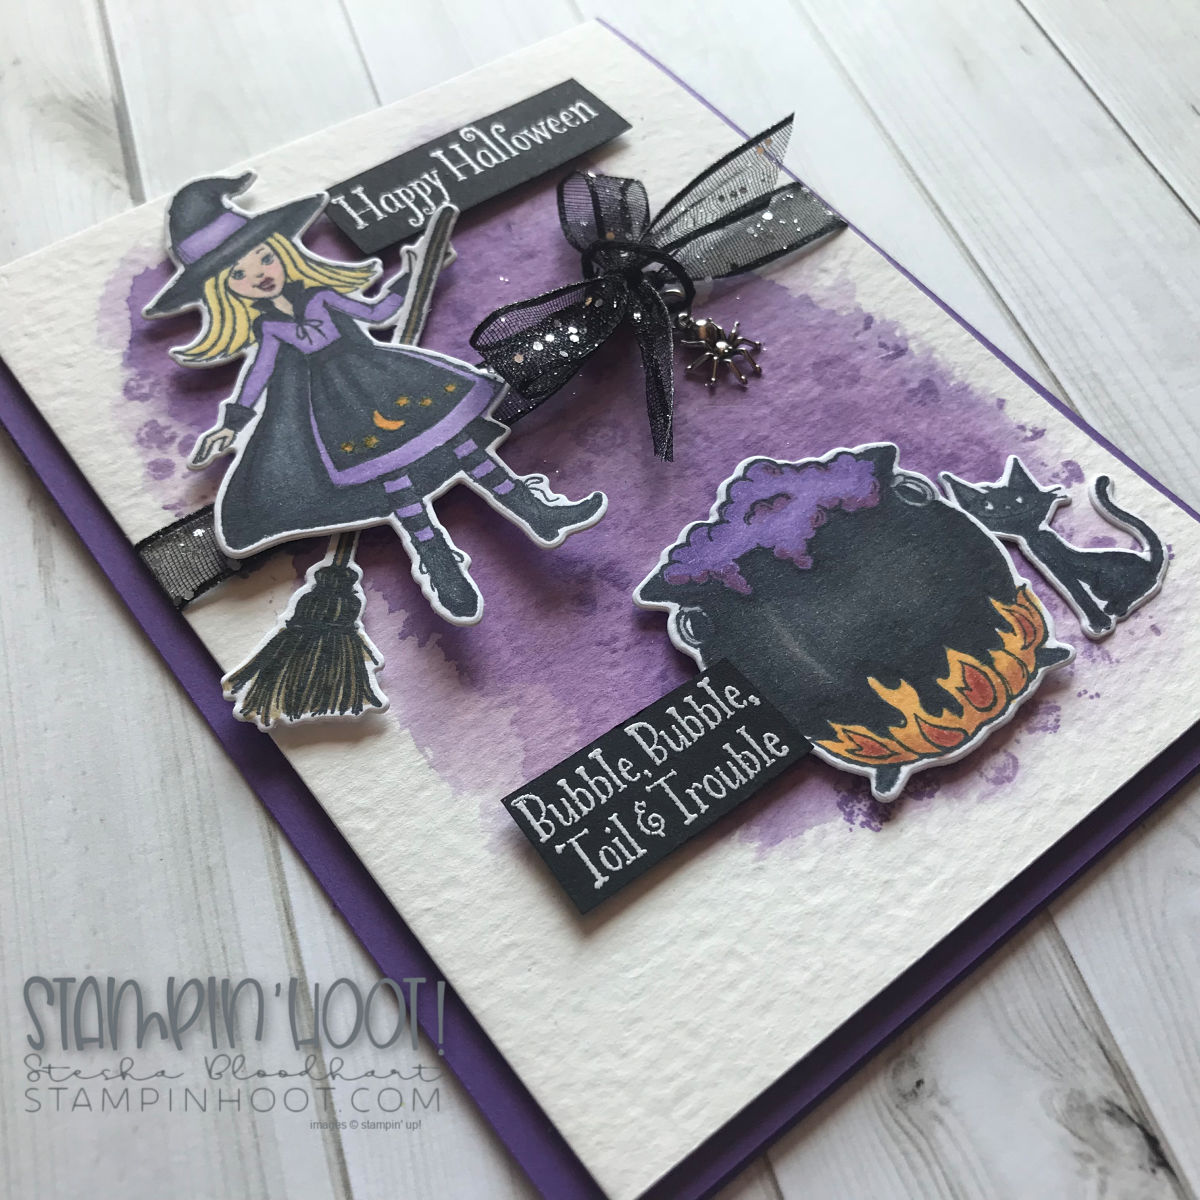 Couldron Bubble Bundle by Stampin' Up! from the 2018 Holiday Catalog. Handmade Halloween Card by Stesha Bloodhart, Stampin' Hoot! #steshabloodhart #stampinhoot